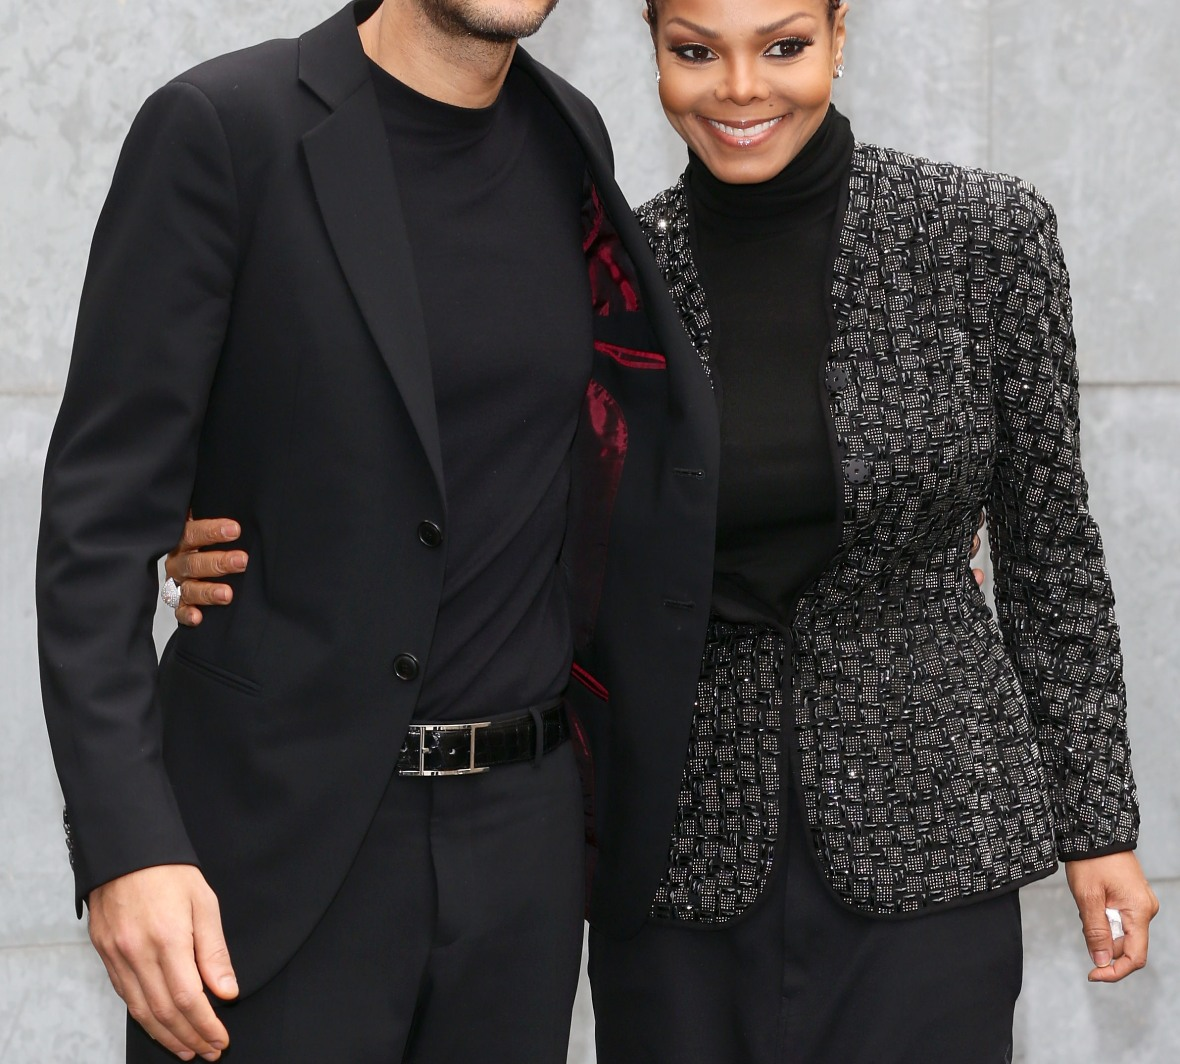 janet and wissam. (photo credit: getty images)